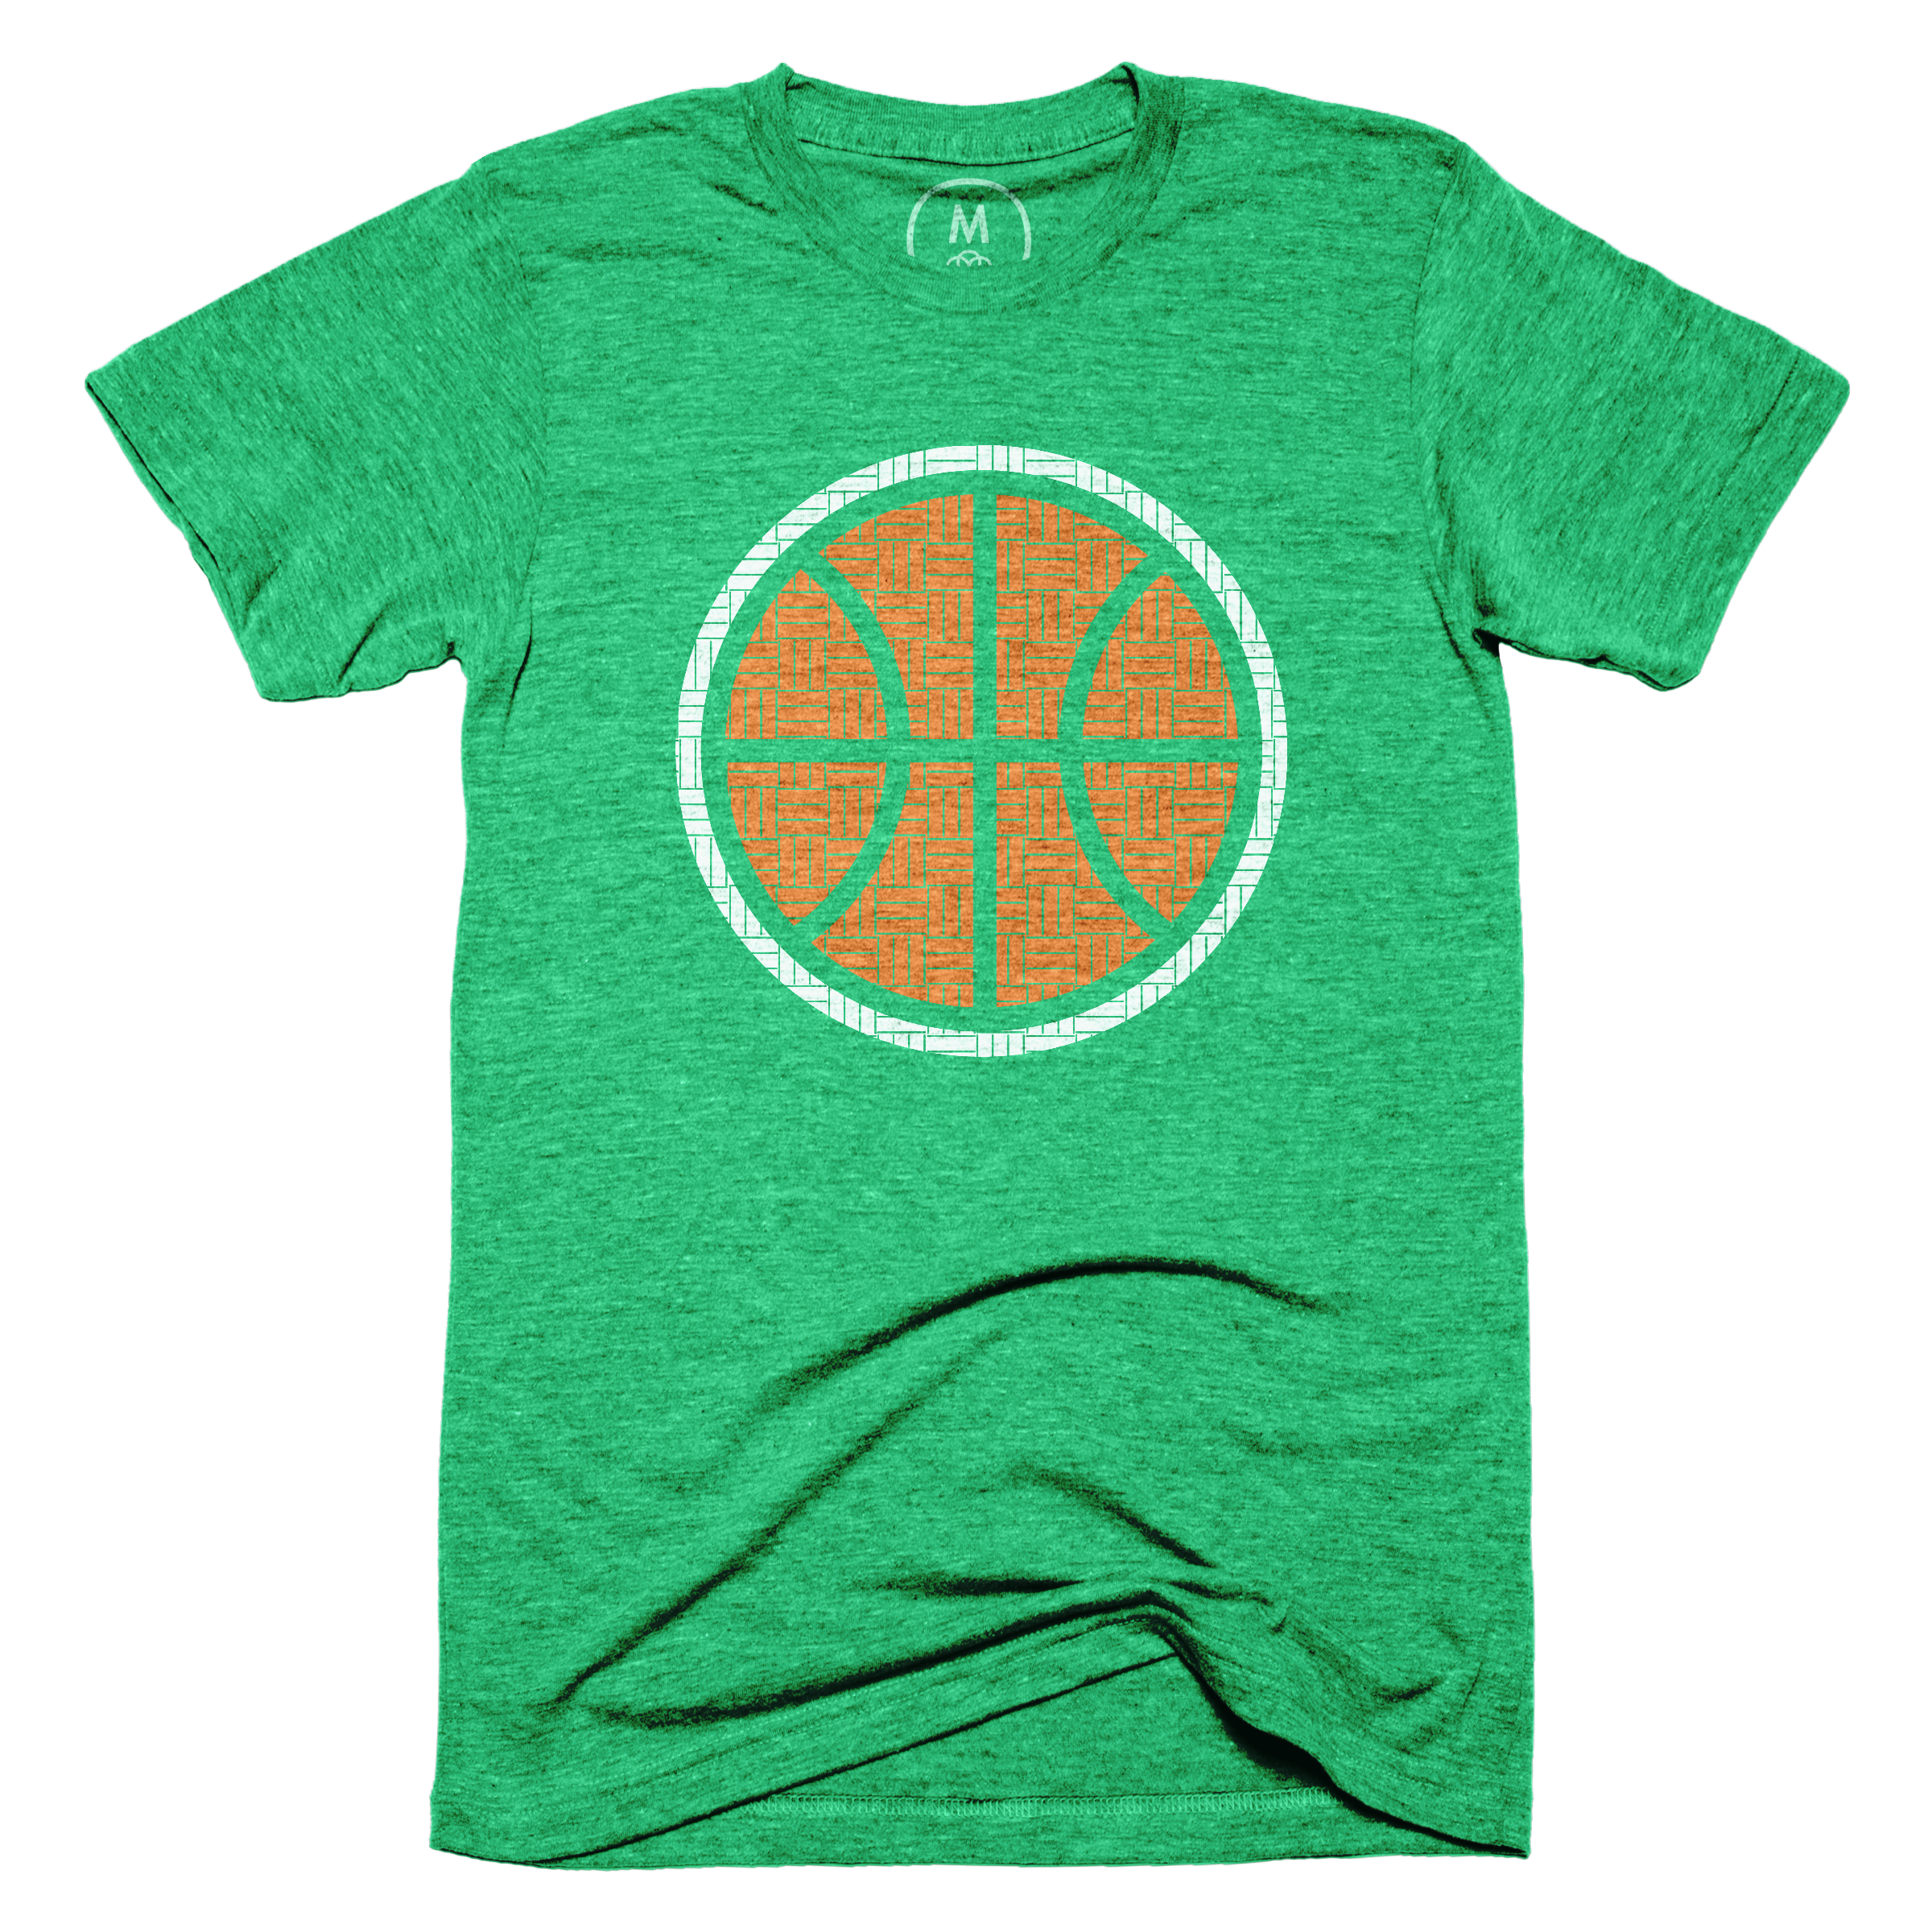 Boston Parquet Envy (Men's)